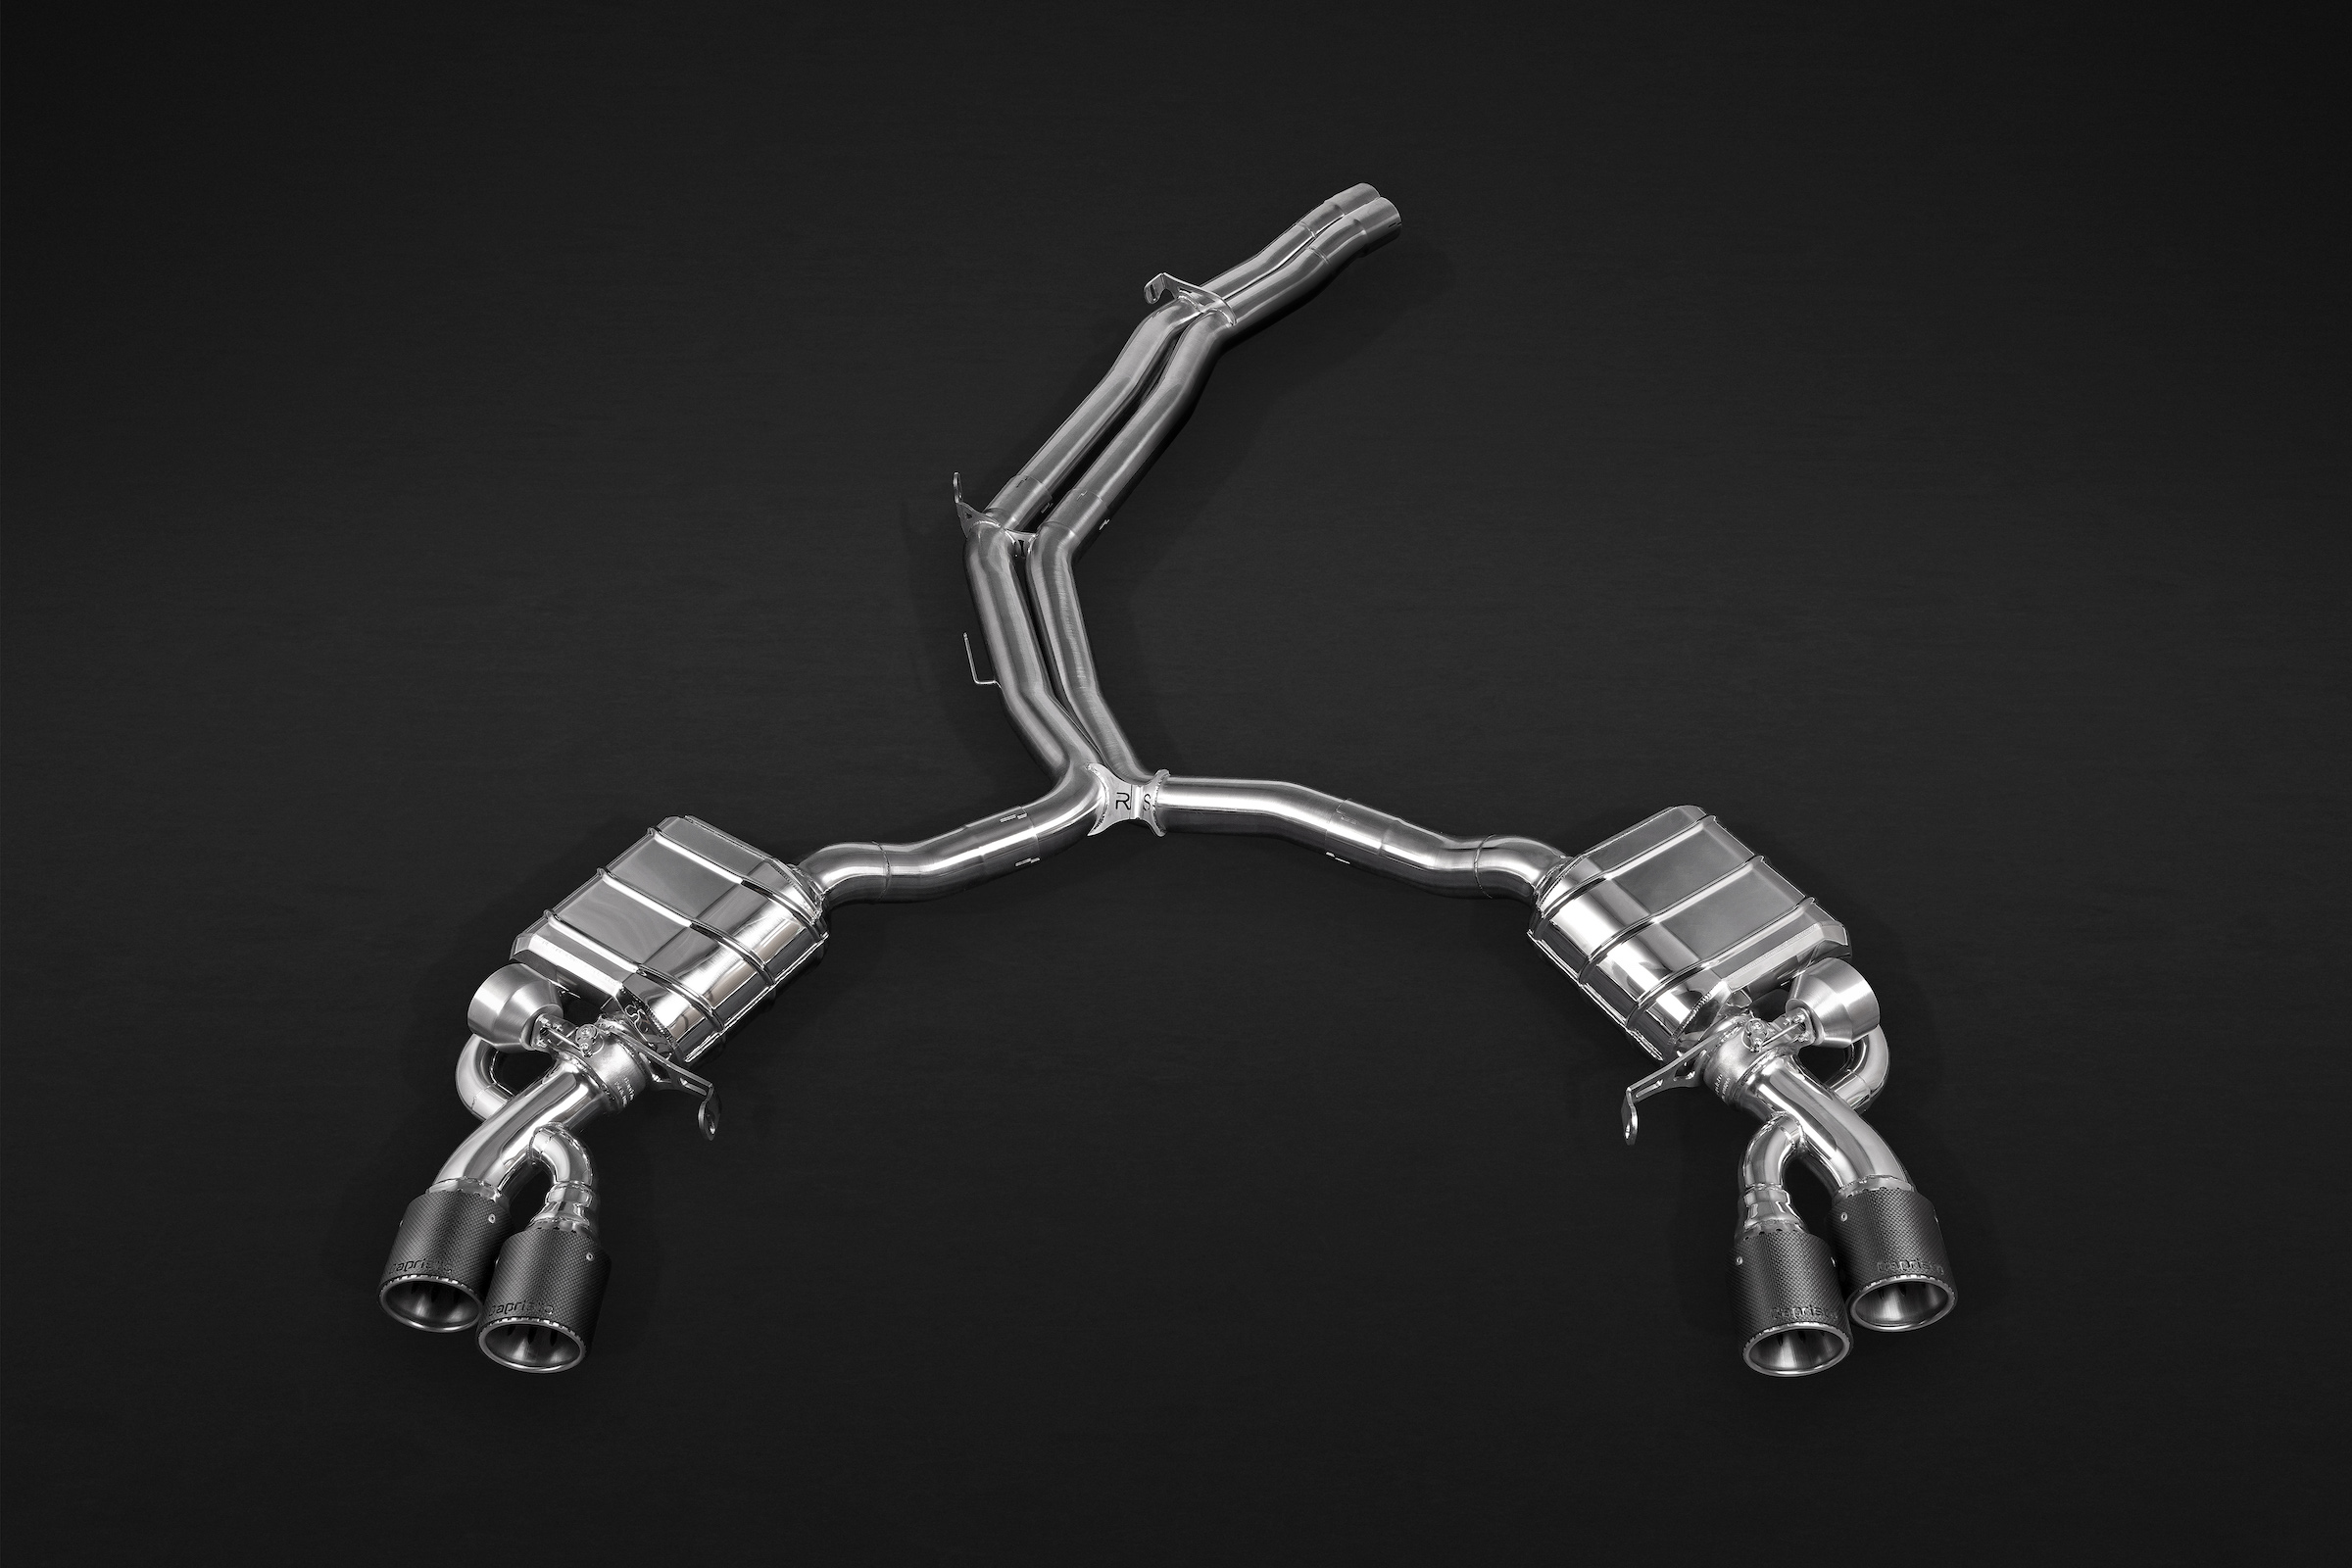 Capristo RS5 (B9/F5) Valved Catback Exhaust System, Carbon Tips, with E2P